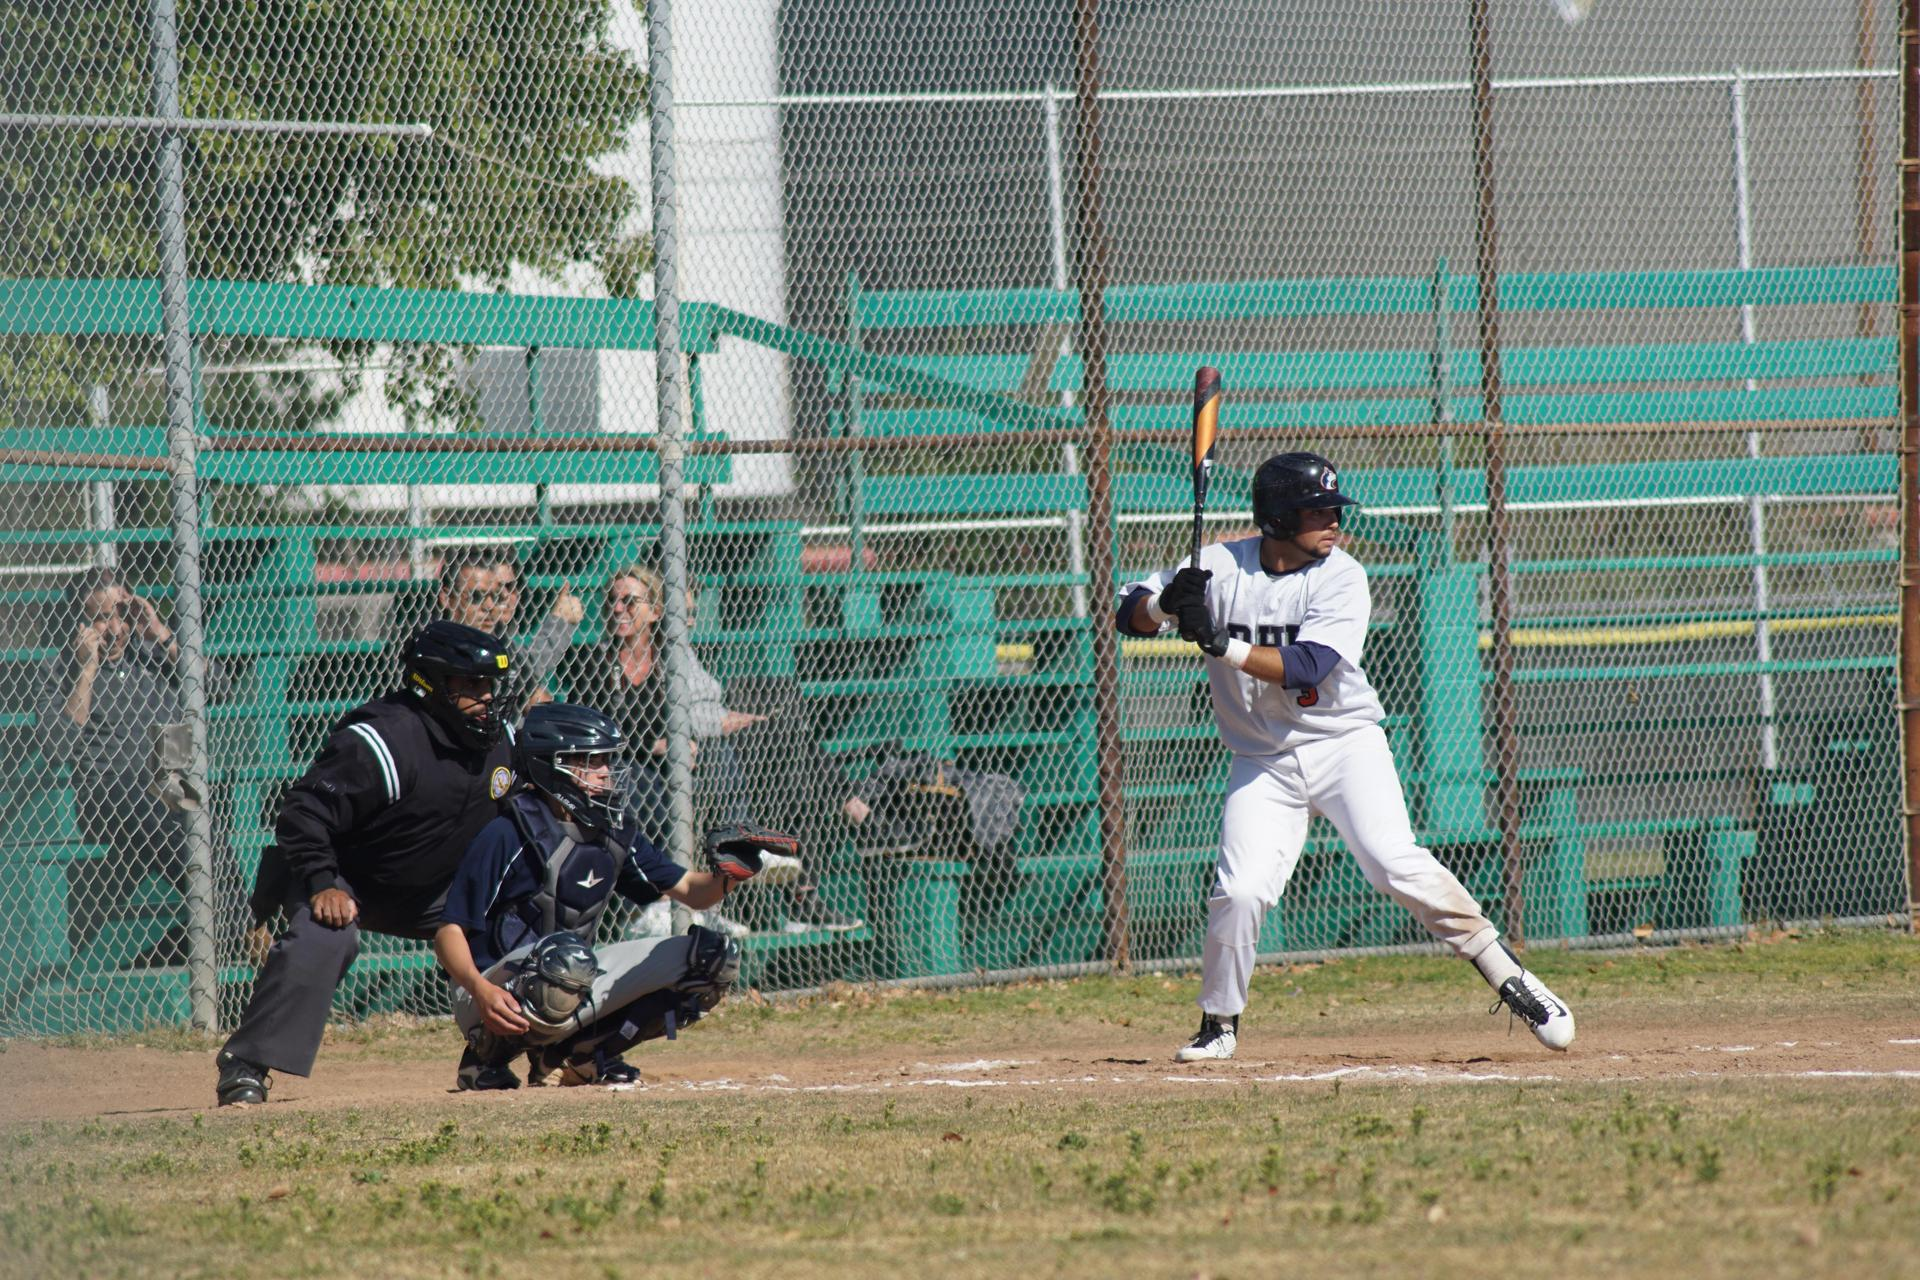 Varsity boys' baseball up to bat.